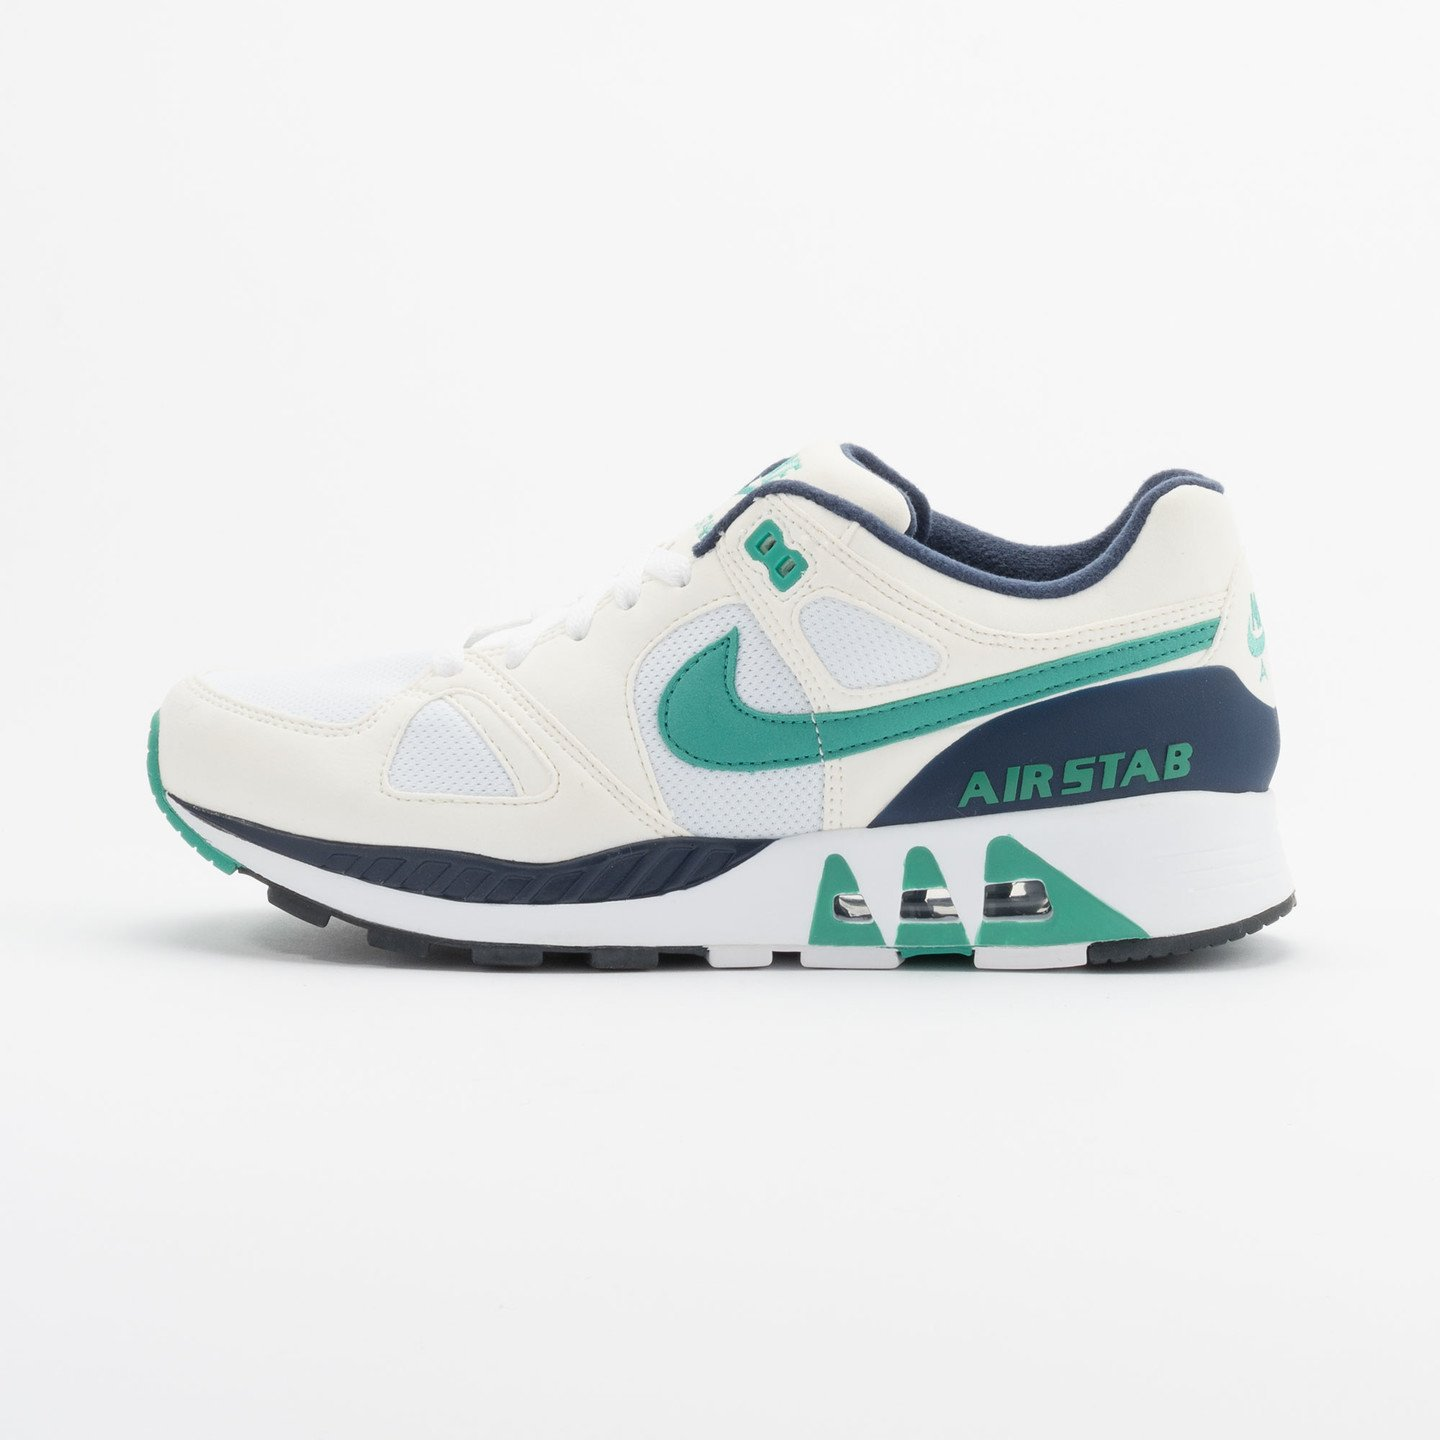 Nike Air Stab White/Emerald Green-Sl-Mid Nvy 312451-100-40